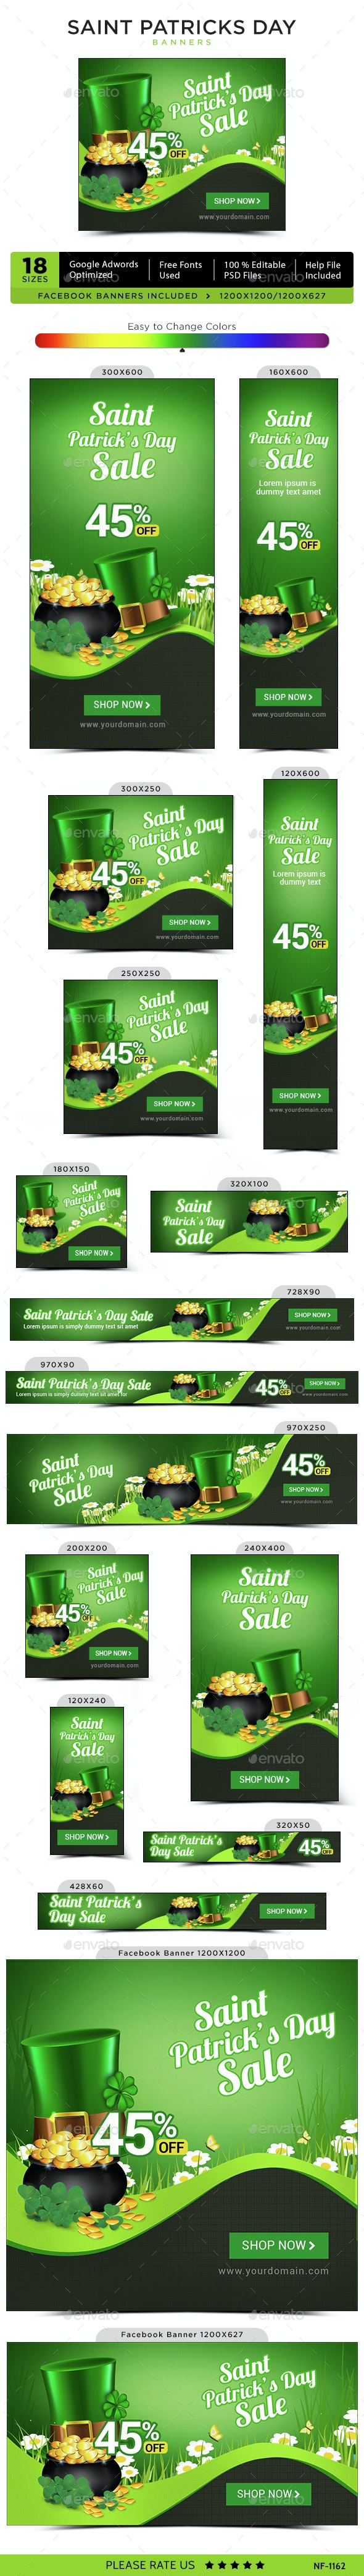 Saint Patricks Day Banners - Banners & Ads Web Elements